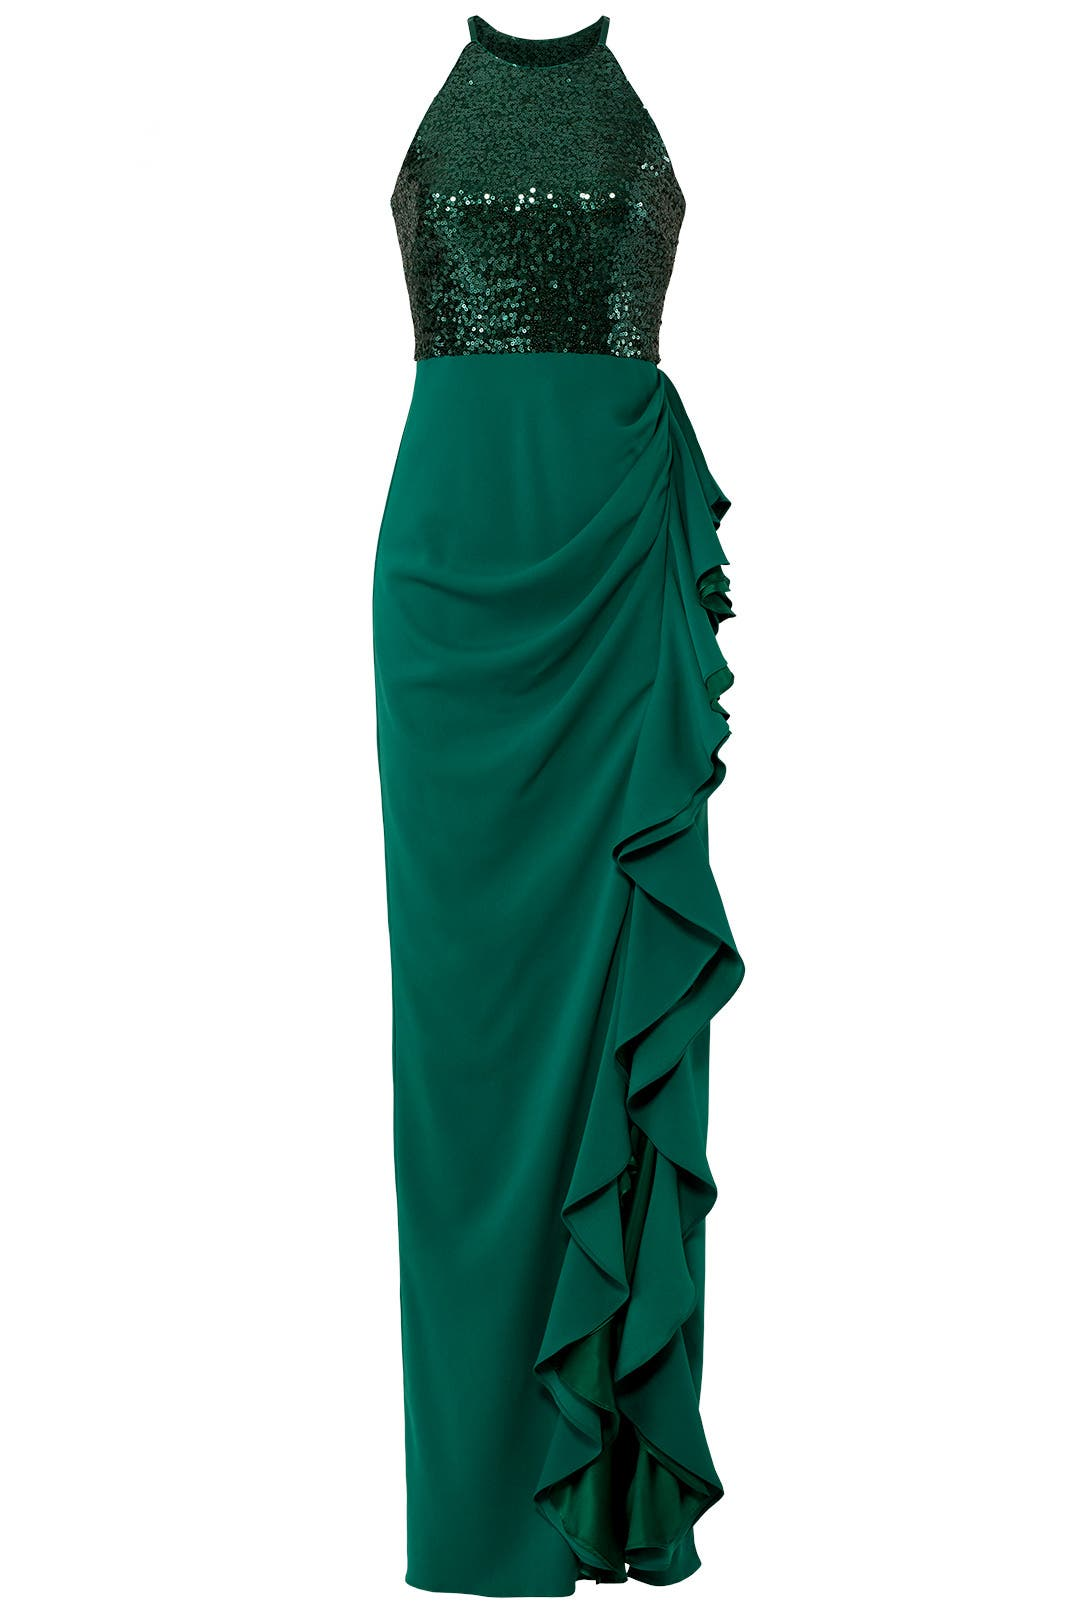 Sequin Ruffle Gown by Badgley Mischka for $100 | Rent the Runway